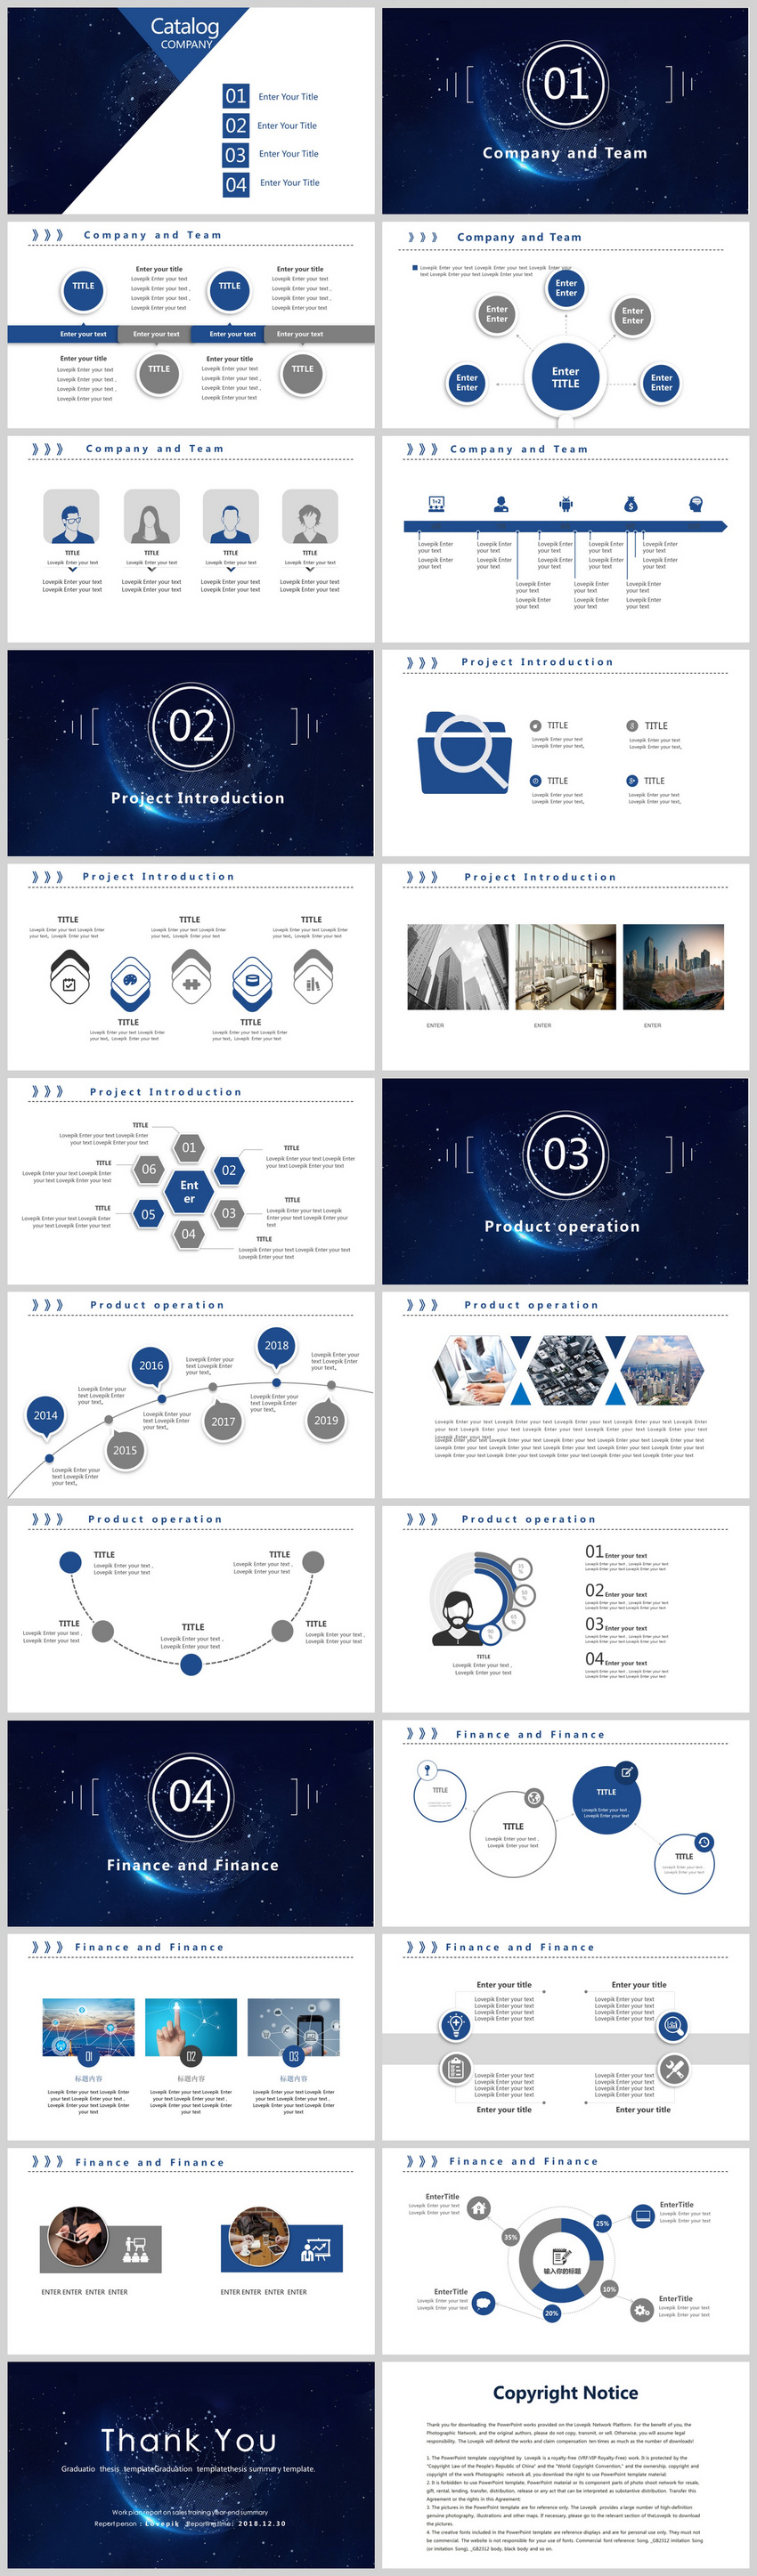 Deep blue technology sense internet business report ppt template deep blue technology sense internet business report ppt template toneelgroepblik Image collections